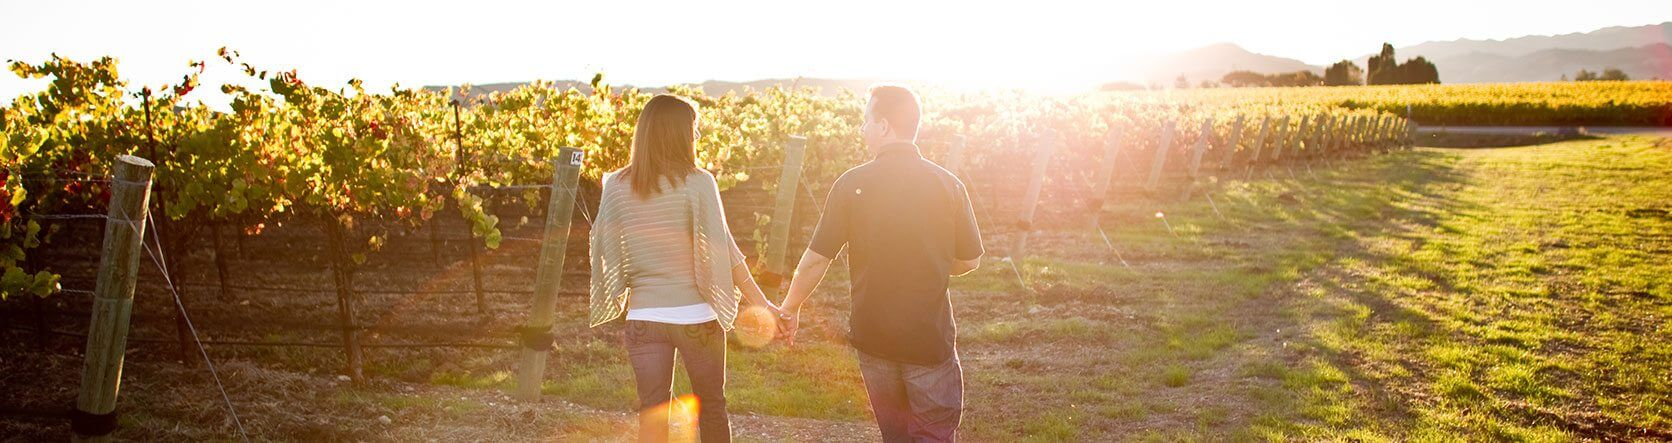 California wine country vacation ideas san luis obispo for Vacation ideas in california